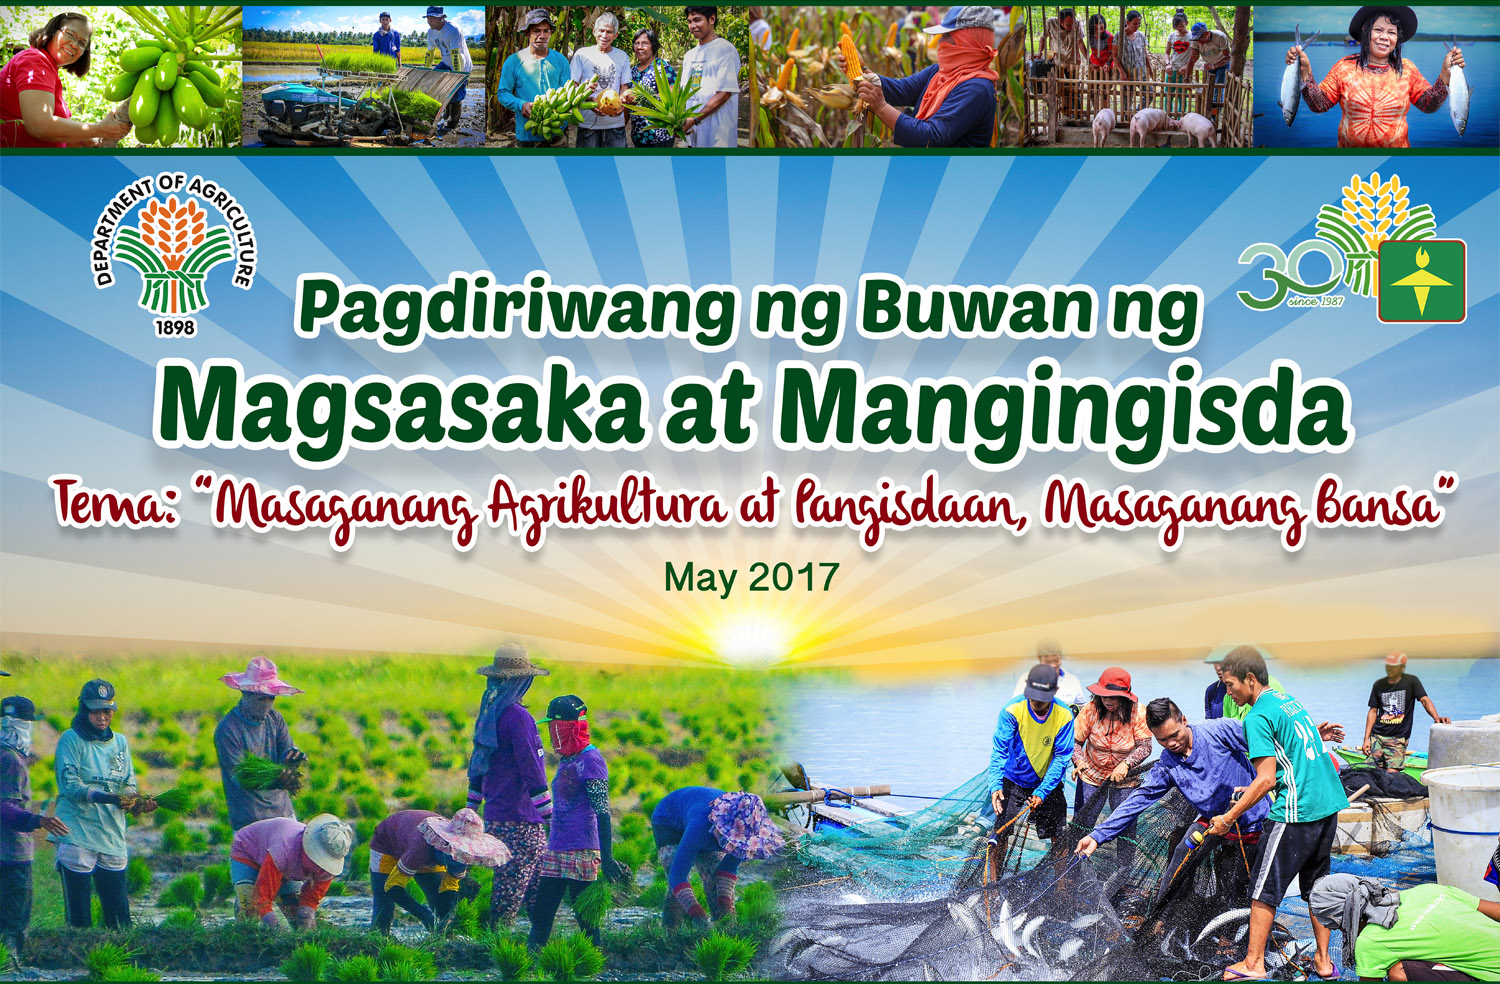 Farmers and Fishers Month 2017